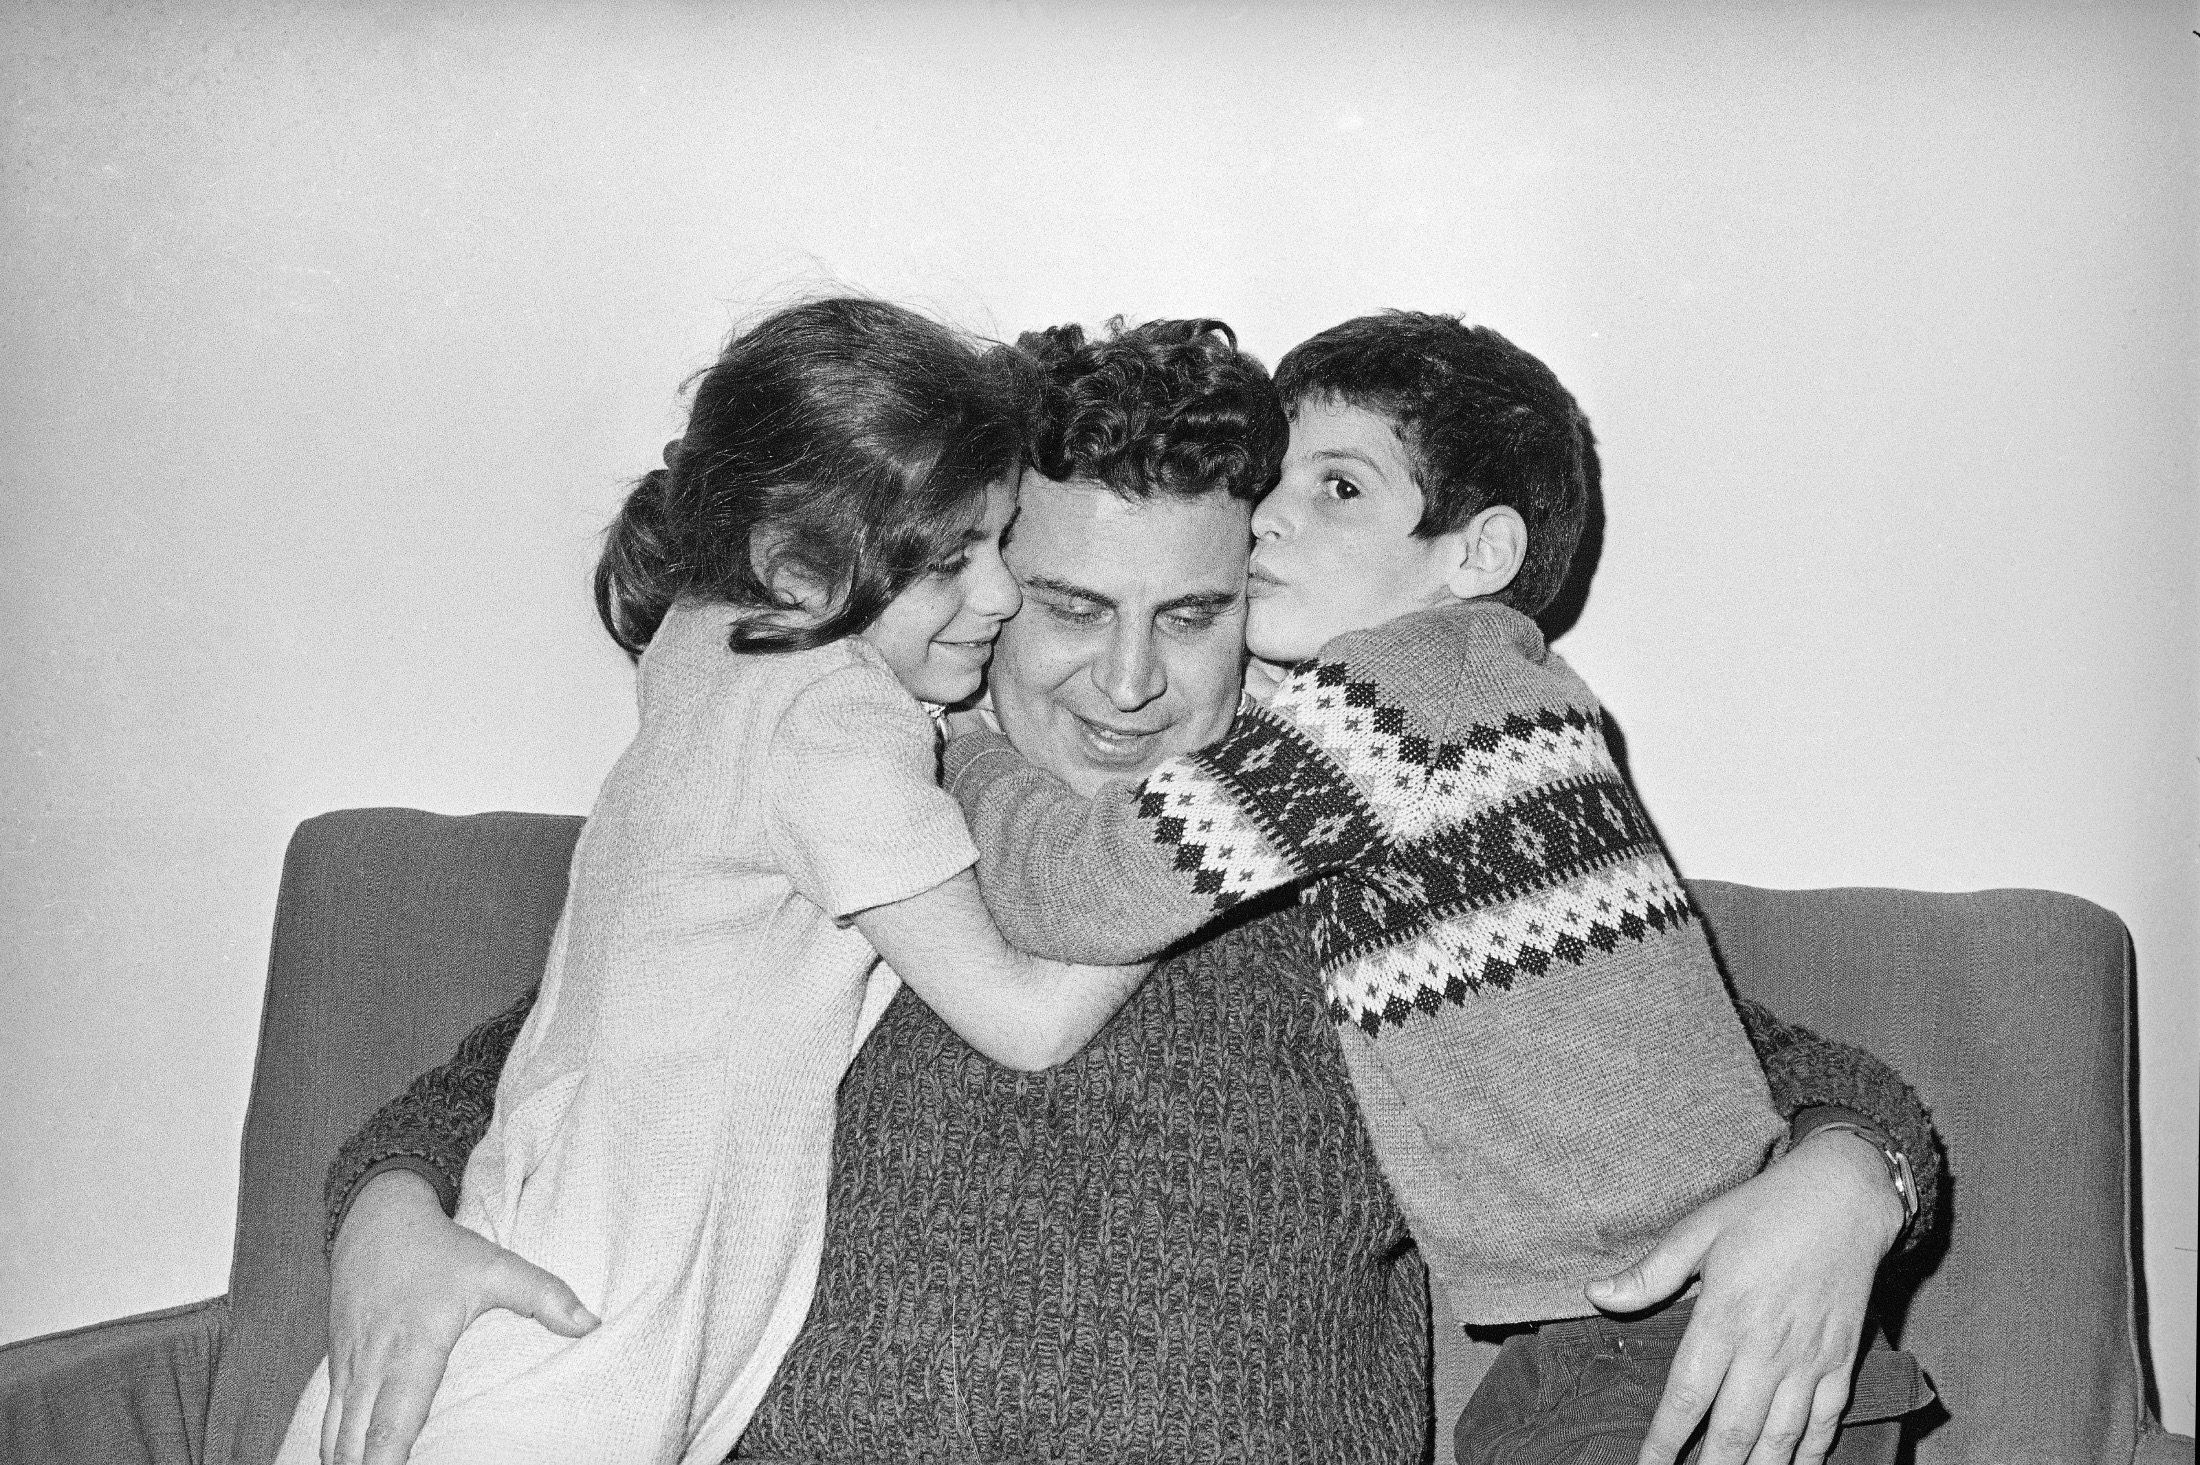 Greek composer Mikis Theodorakis (C) is hugged by his children, Margarita (L), and Giorgios, after his release from prison in Athens, Greece, Jan. 27, 1968. (AP Photo)